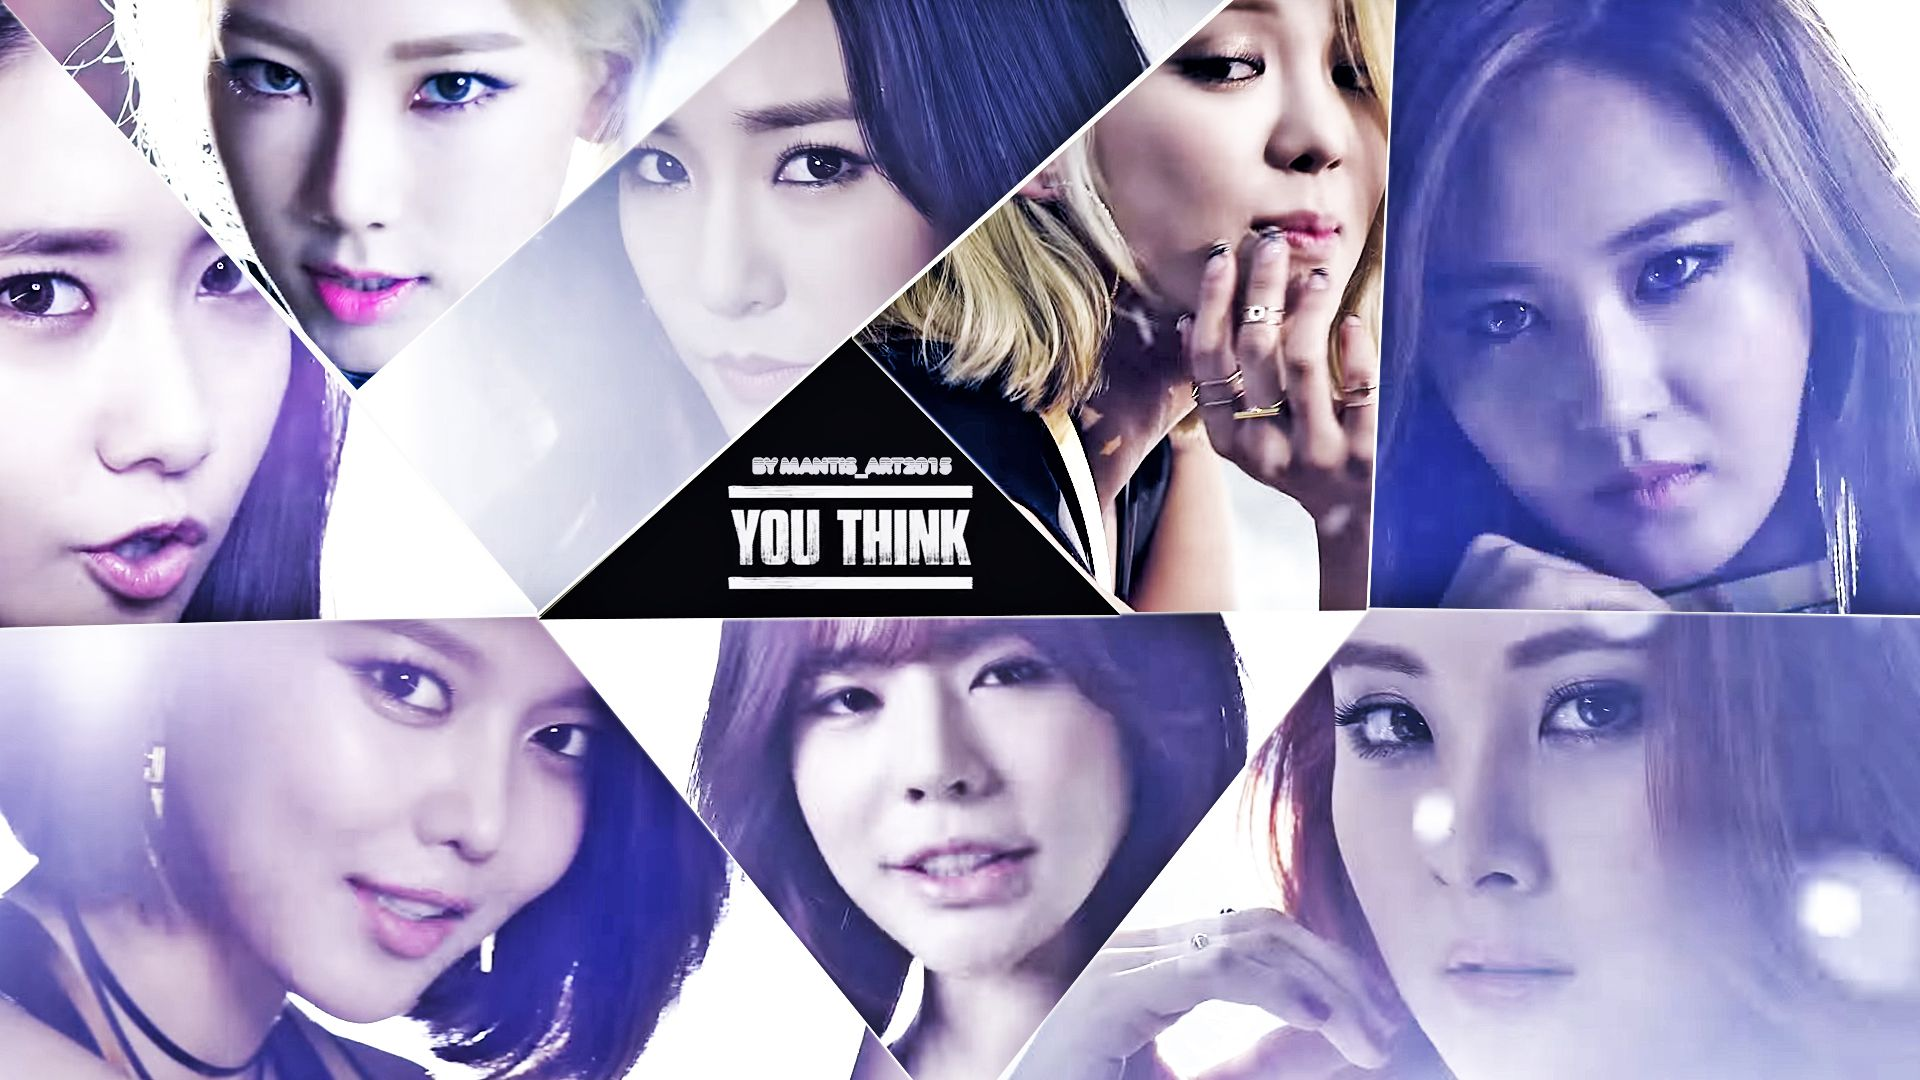 Snsd All About You Think Too Wallpaper By Mantis Art Kpop Snsd